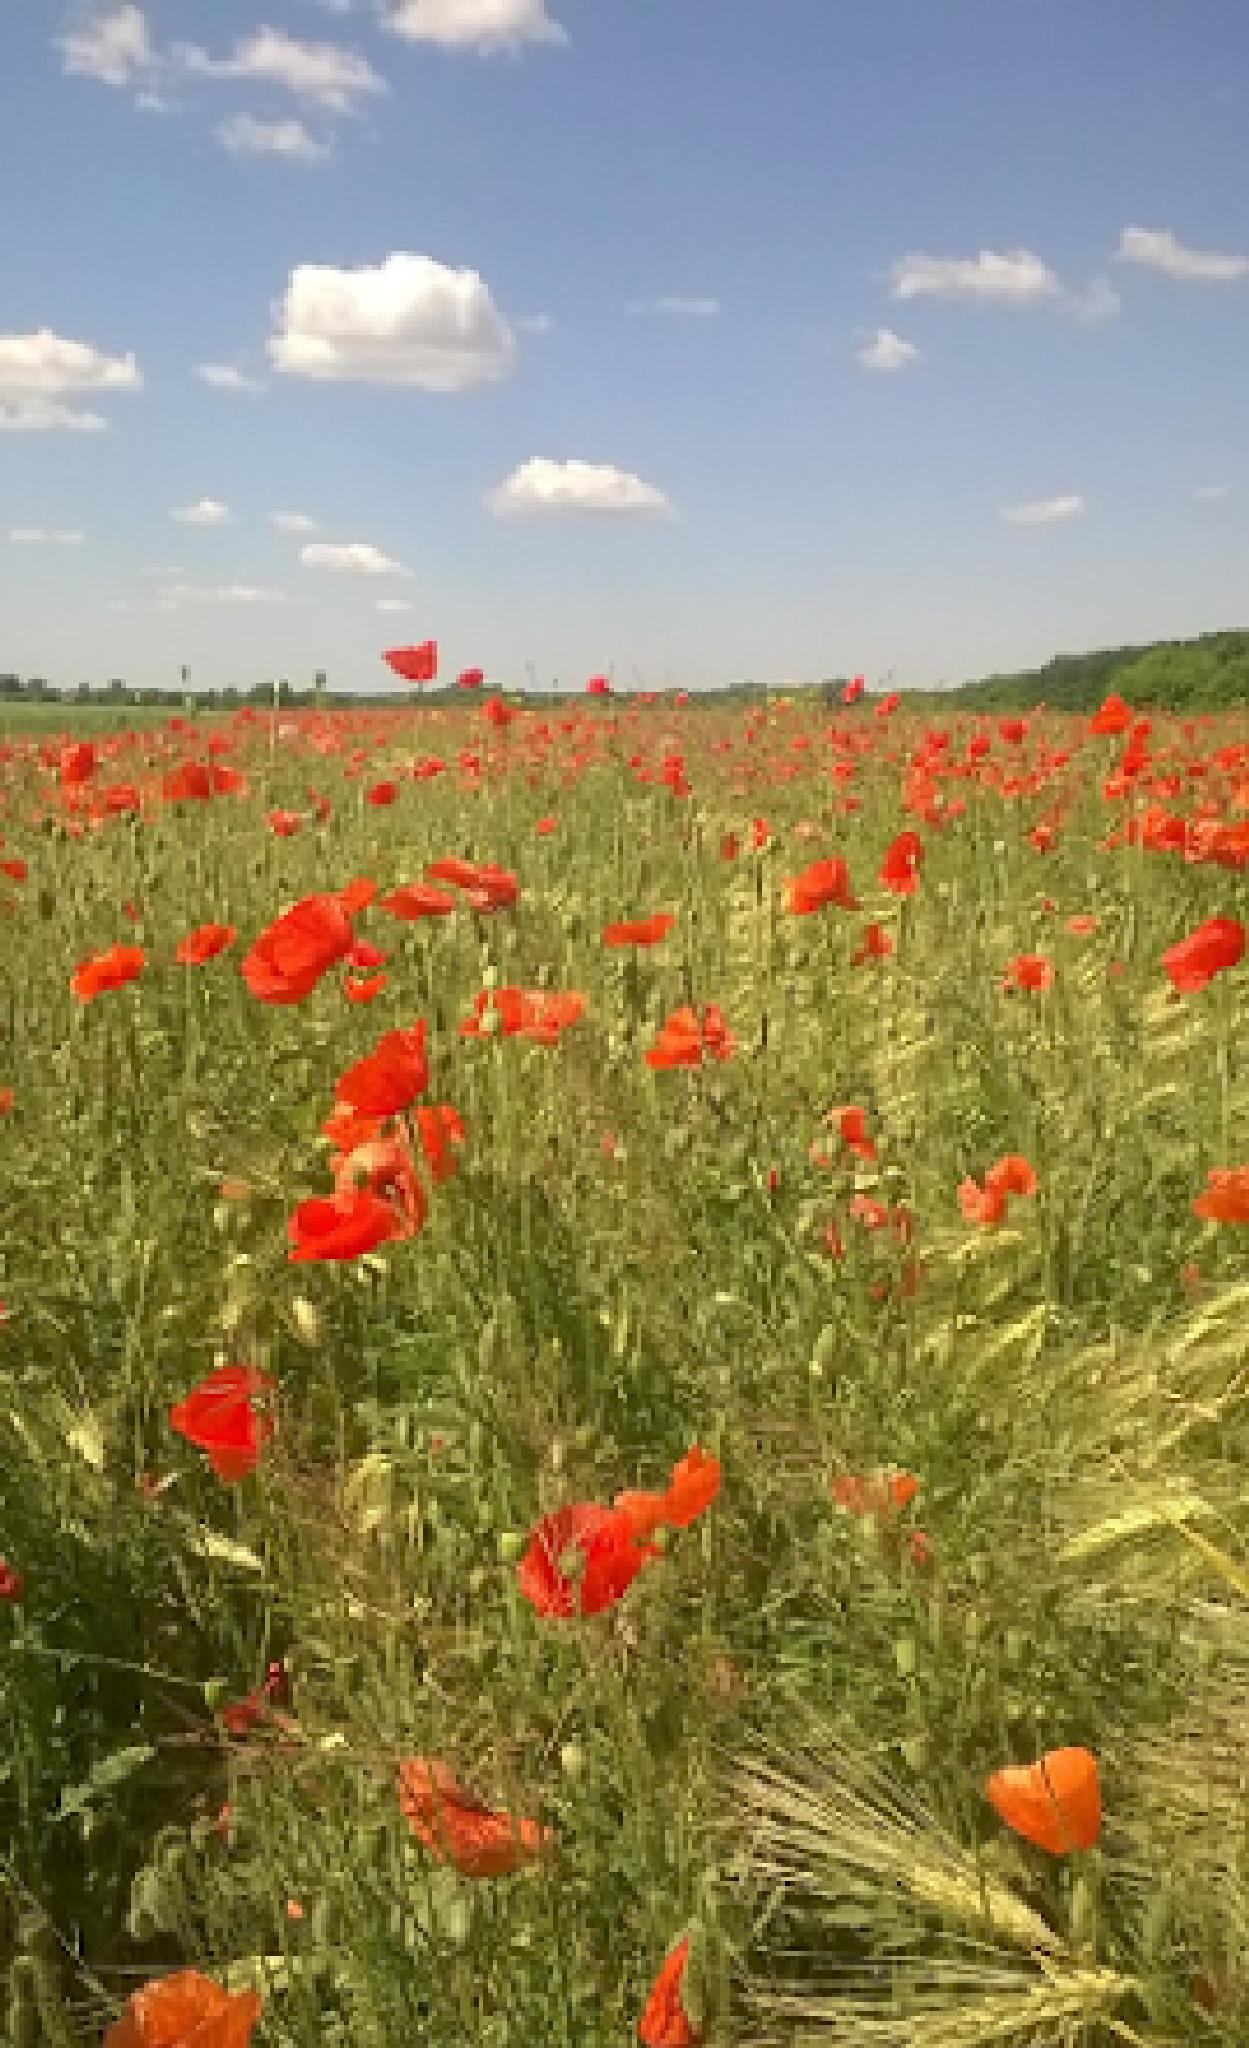 Wild flowers in wheat field by Serhieiv Oleh